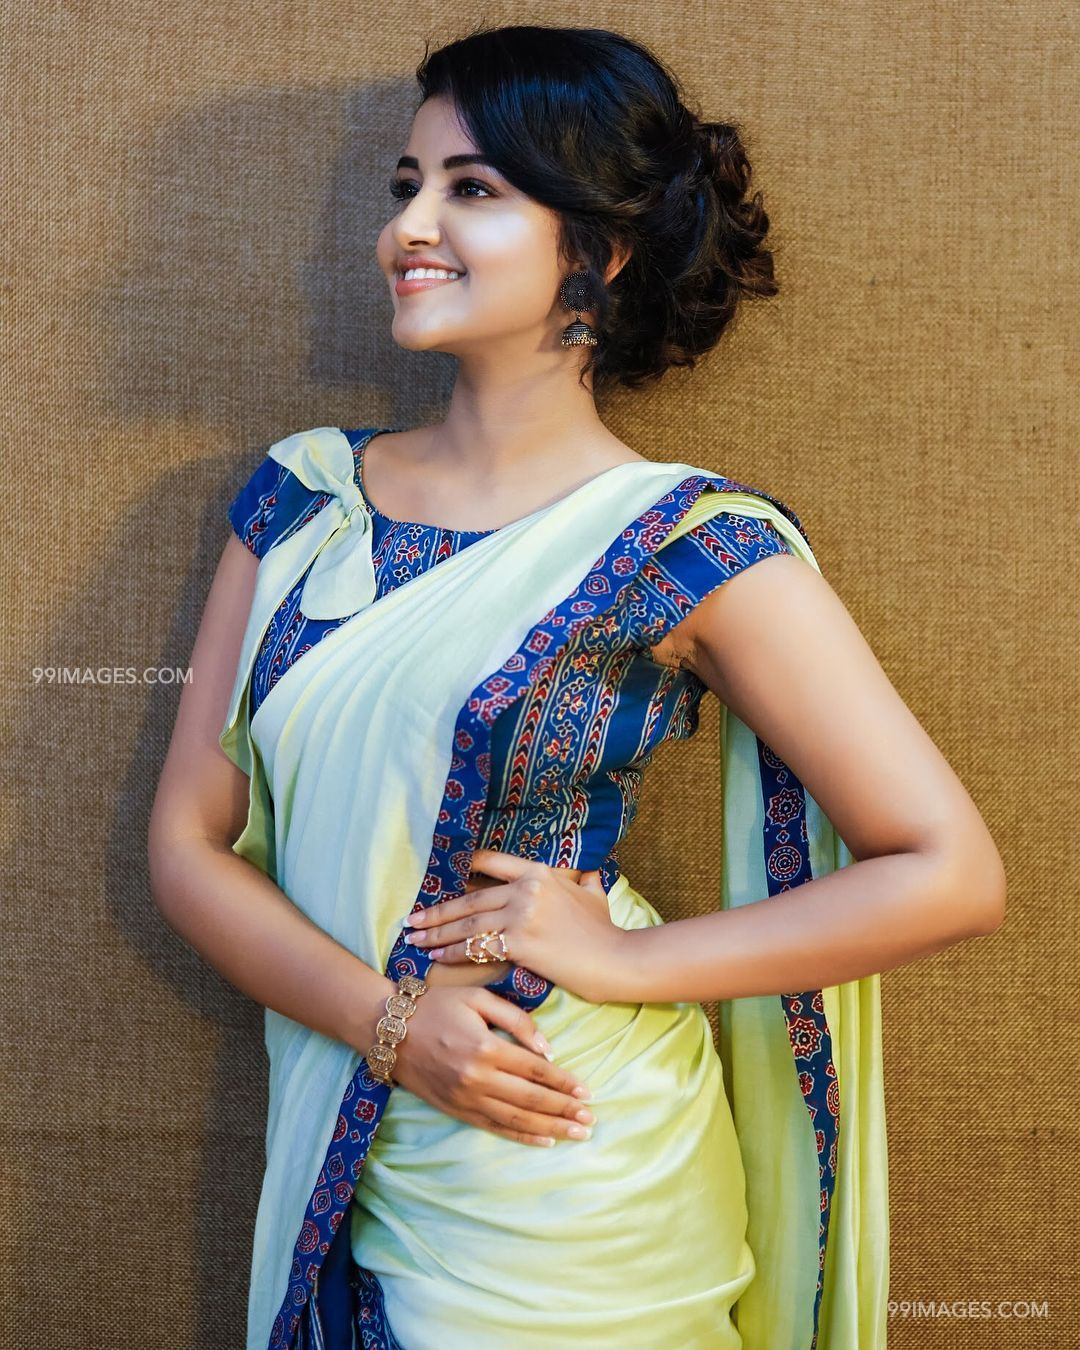 Anupama Parameswaran Beautiful HD Photoshoot Stills & Mobile Wallpapers HD, WhatsApp DP (1080p) (19116) - Anupama Parameswaran